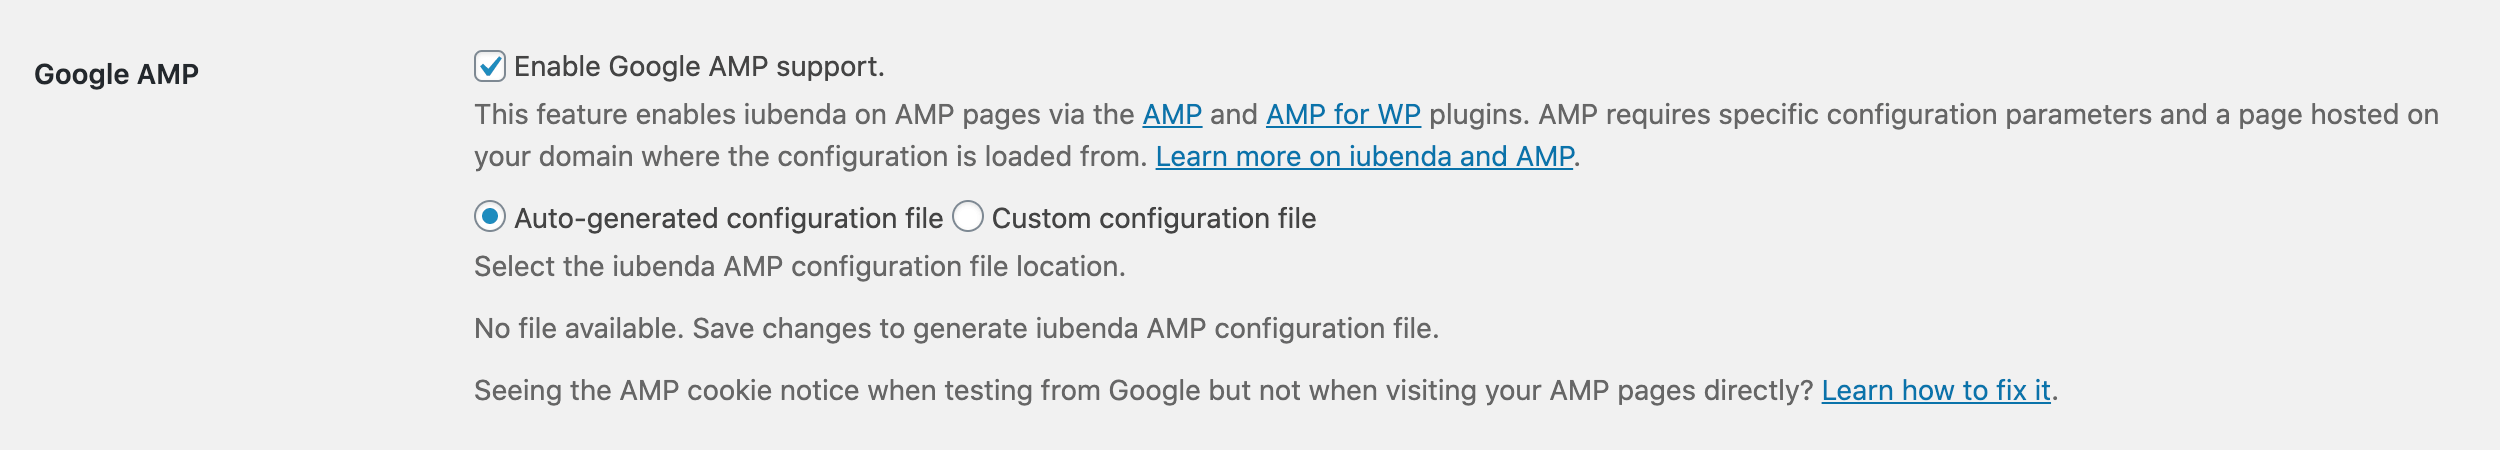 iubenda Cookie Solution plugin for WordPress - Google AMP support